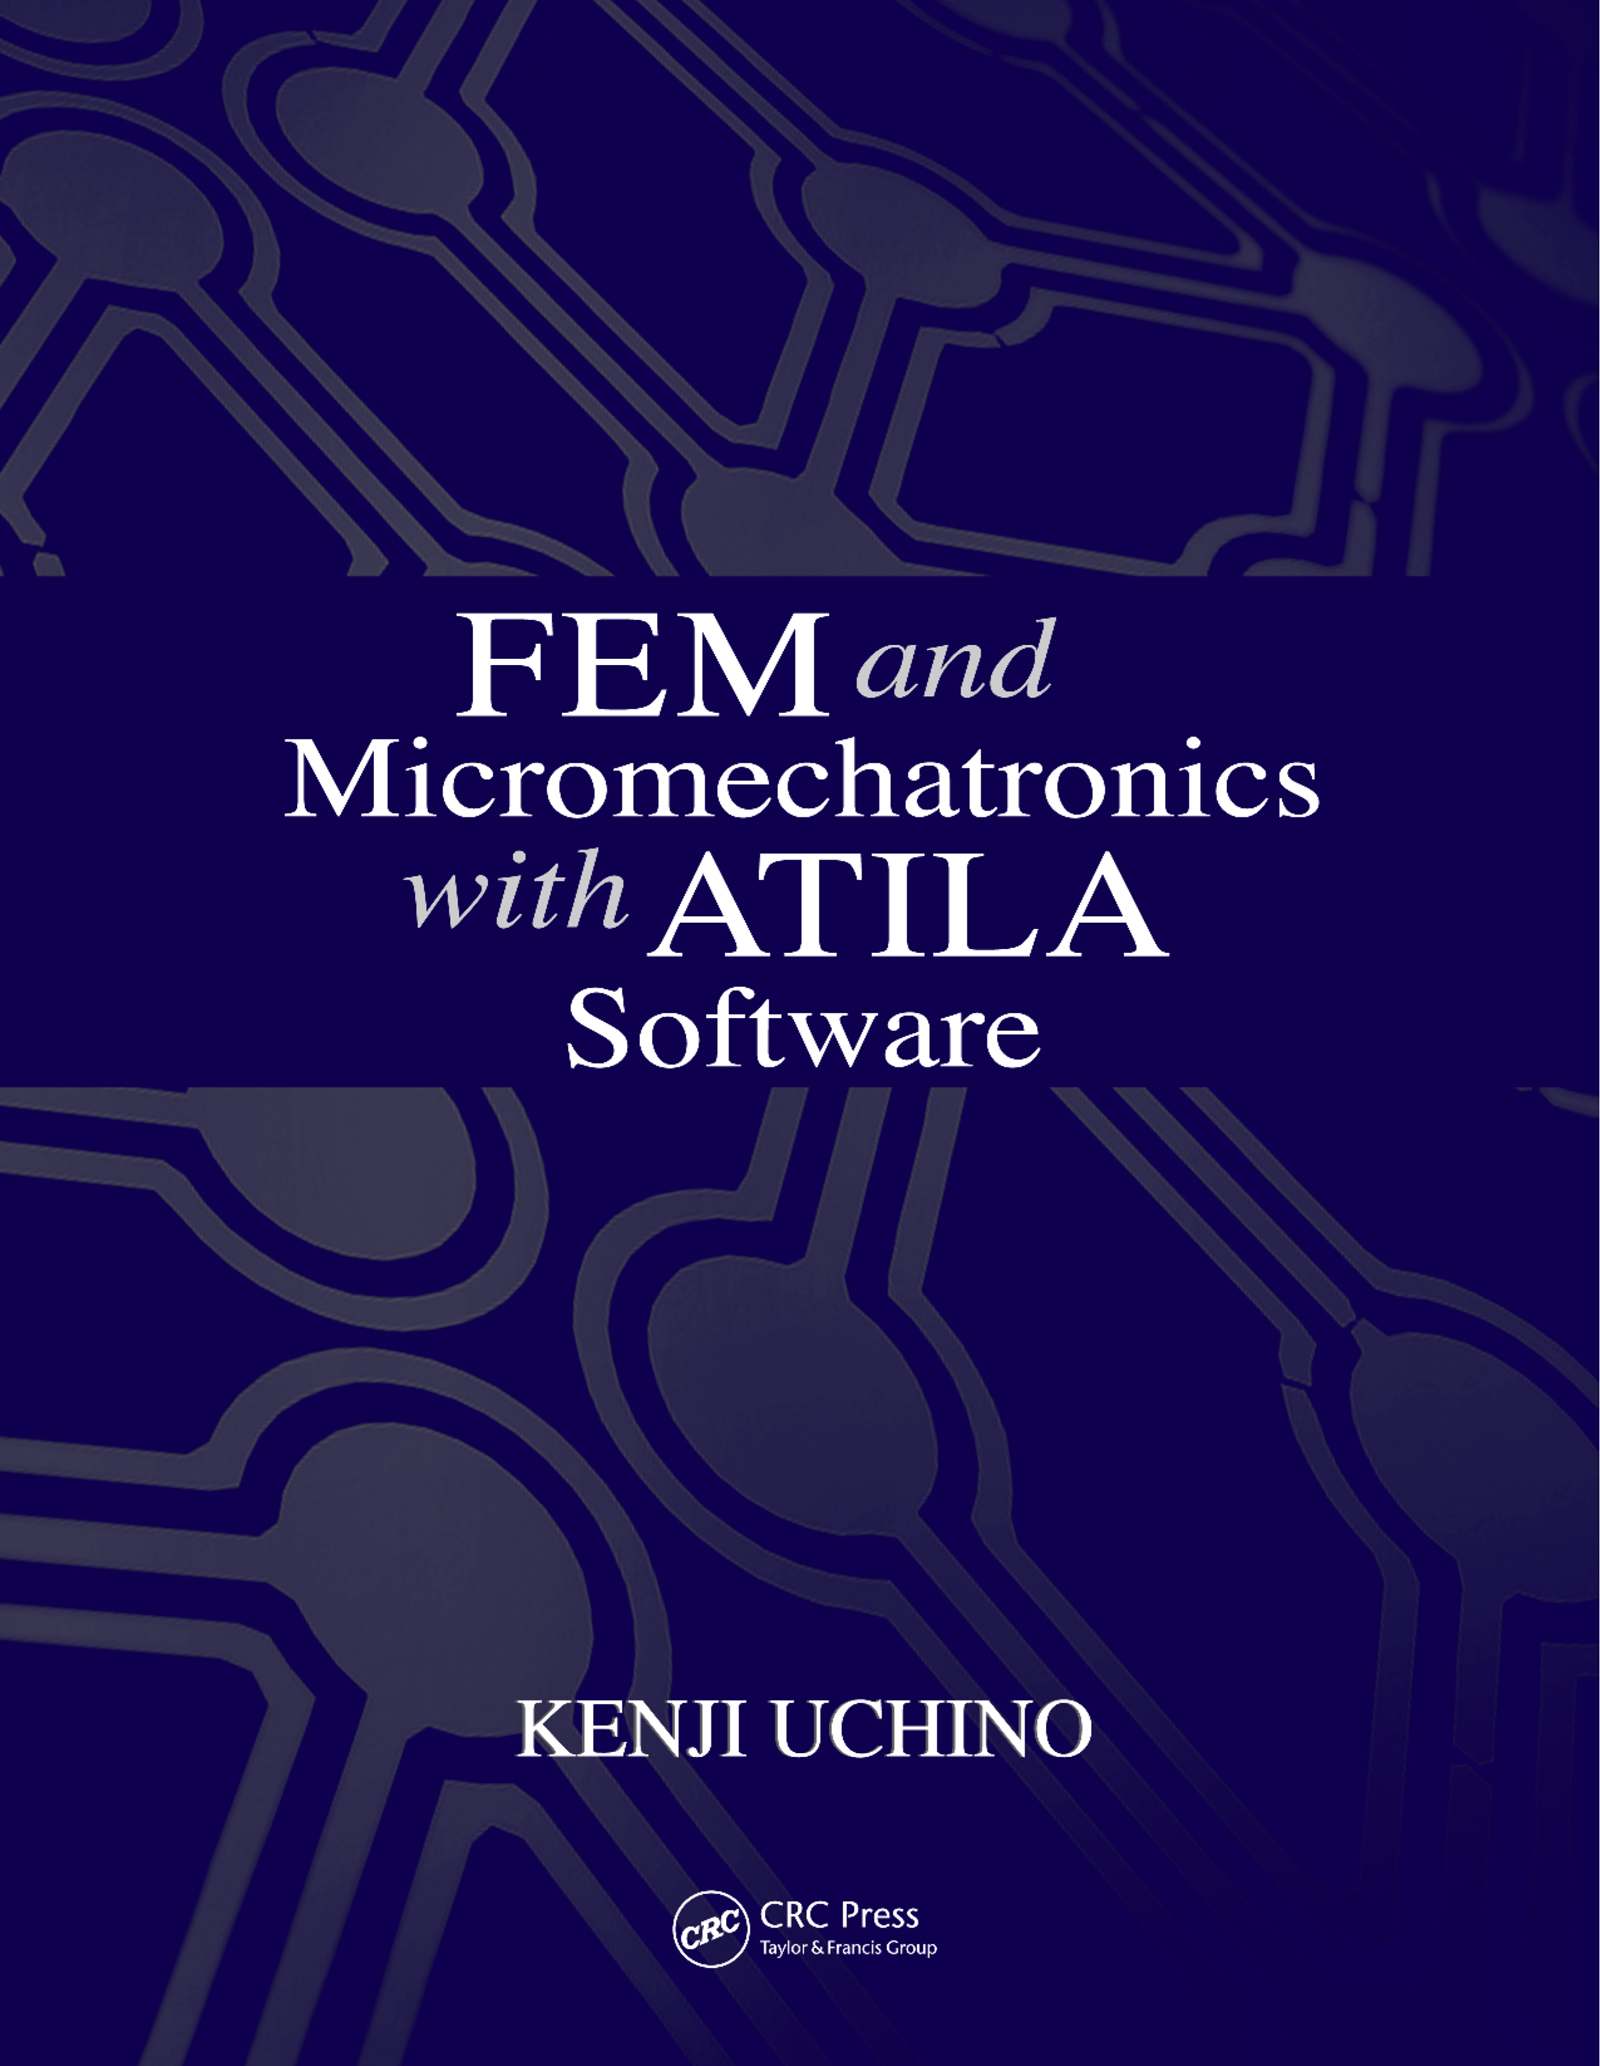 Micromechatronic Trends and Computer Simulation